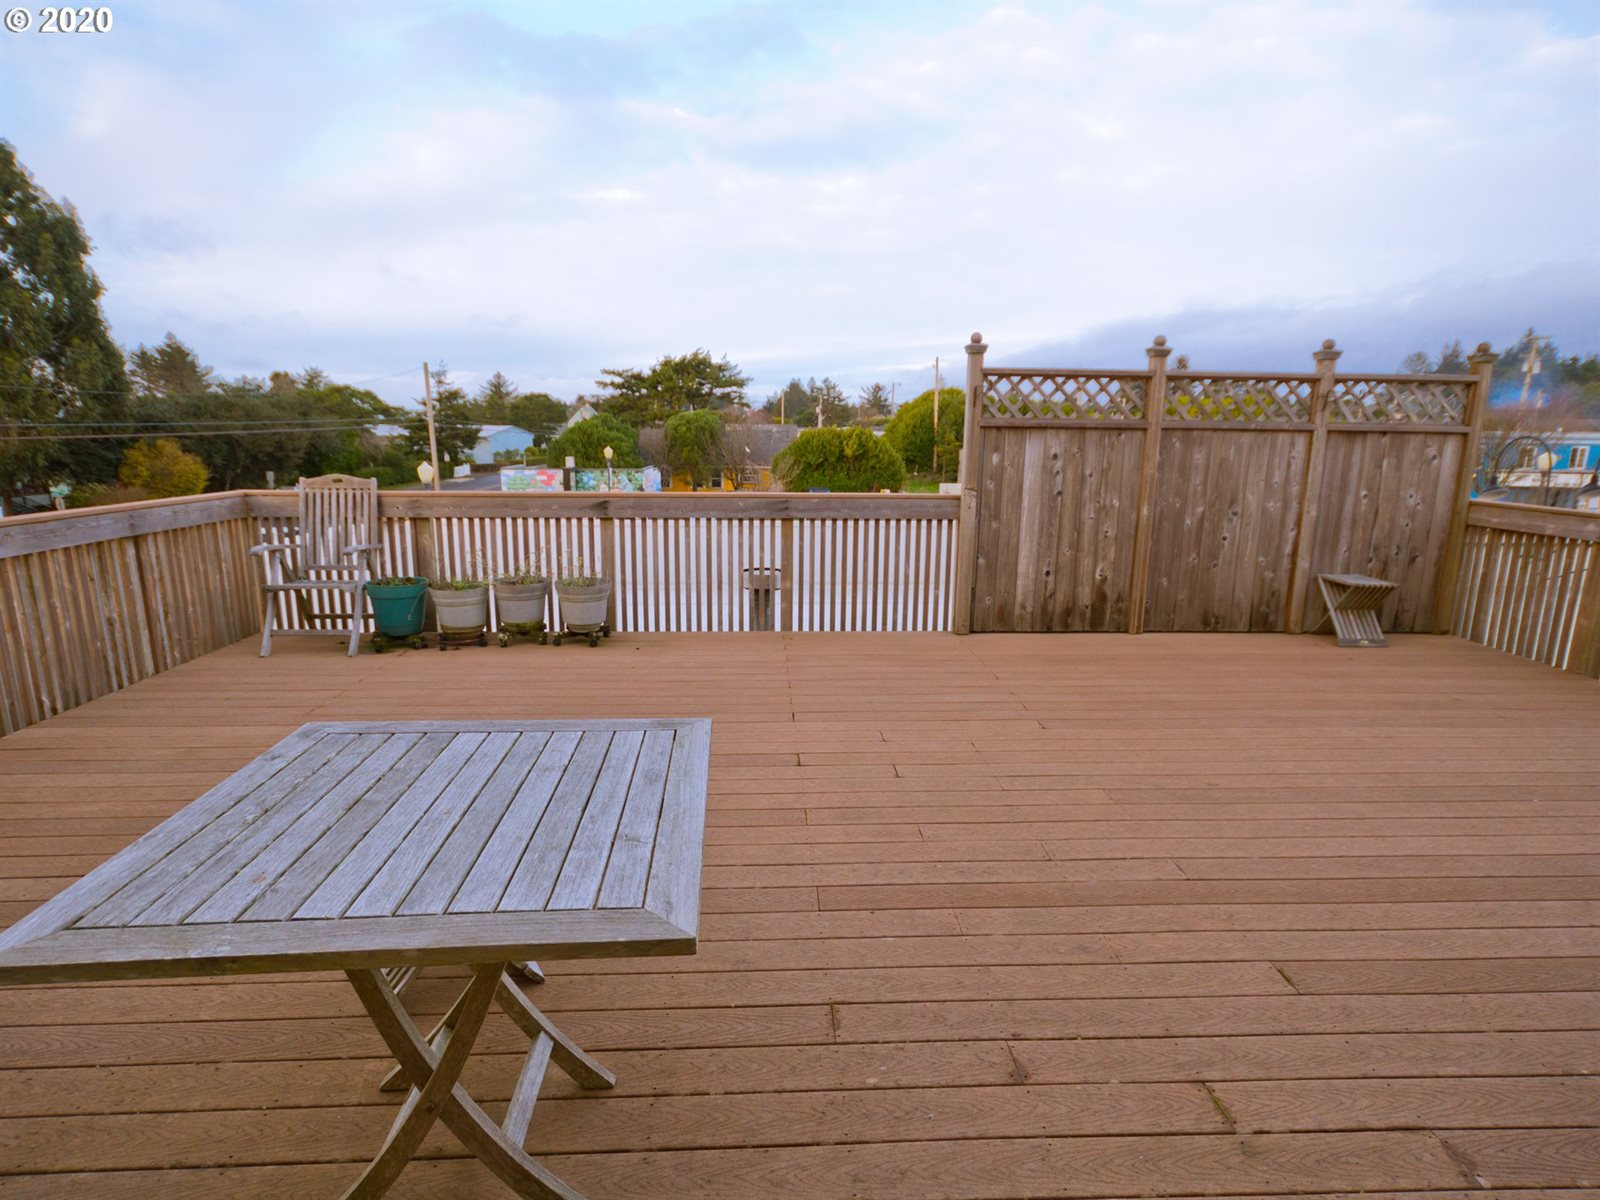 525/575 Newmark Ave, Coos Bay, OR 97420